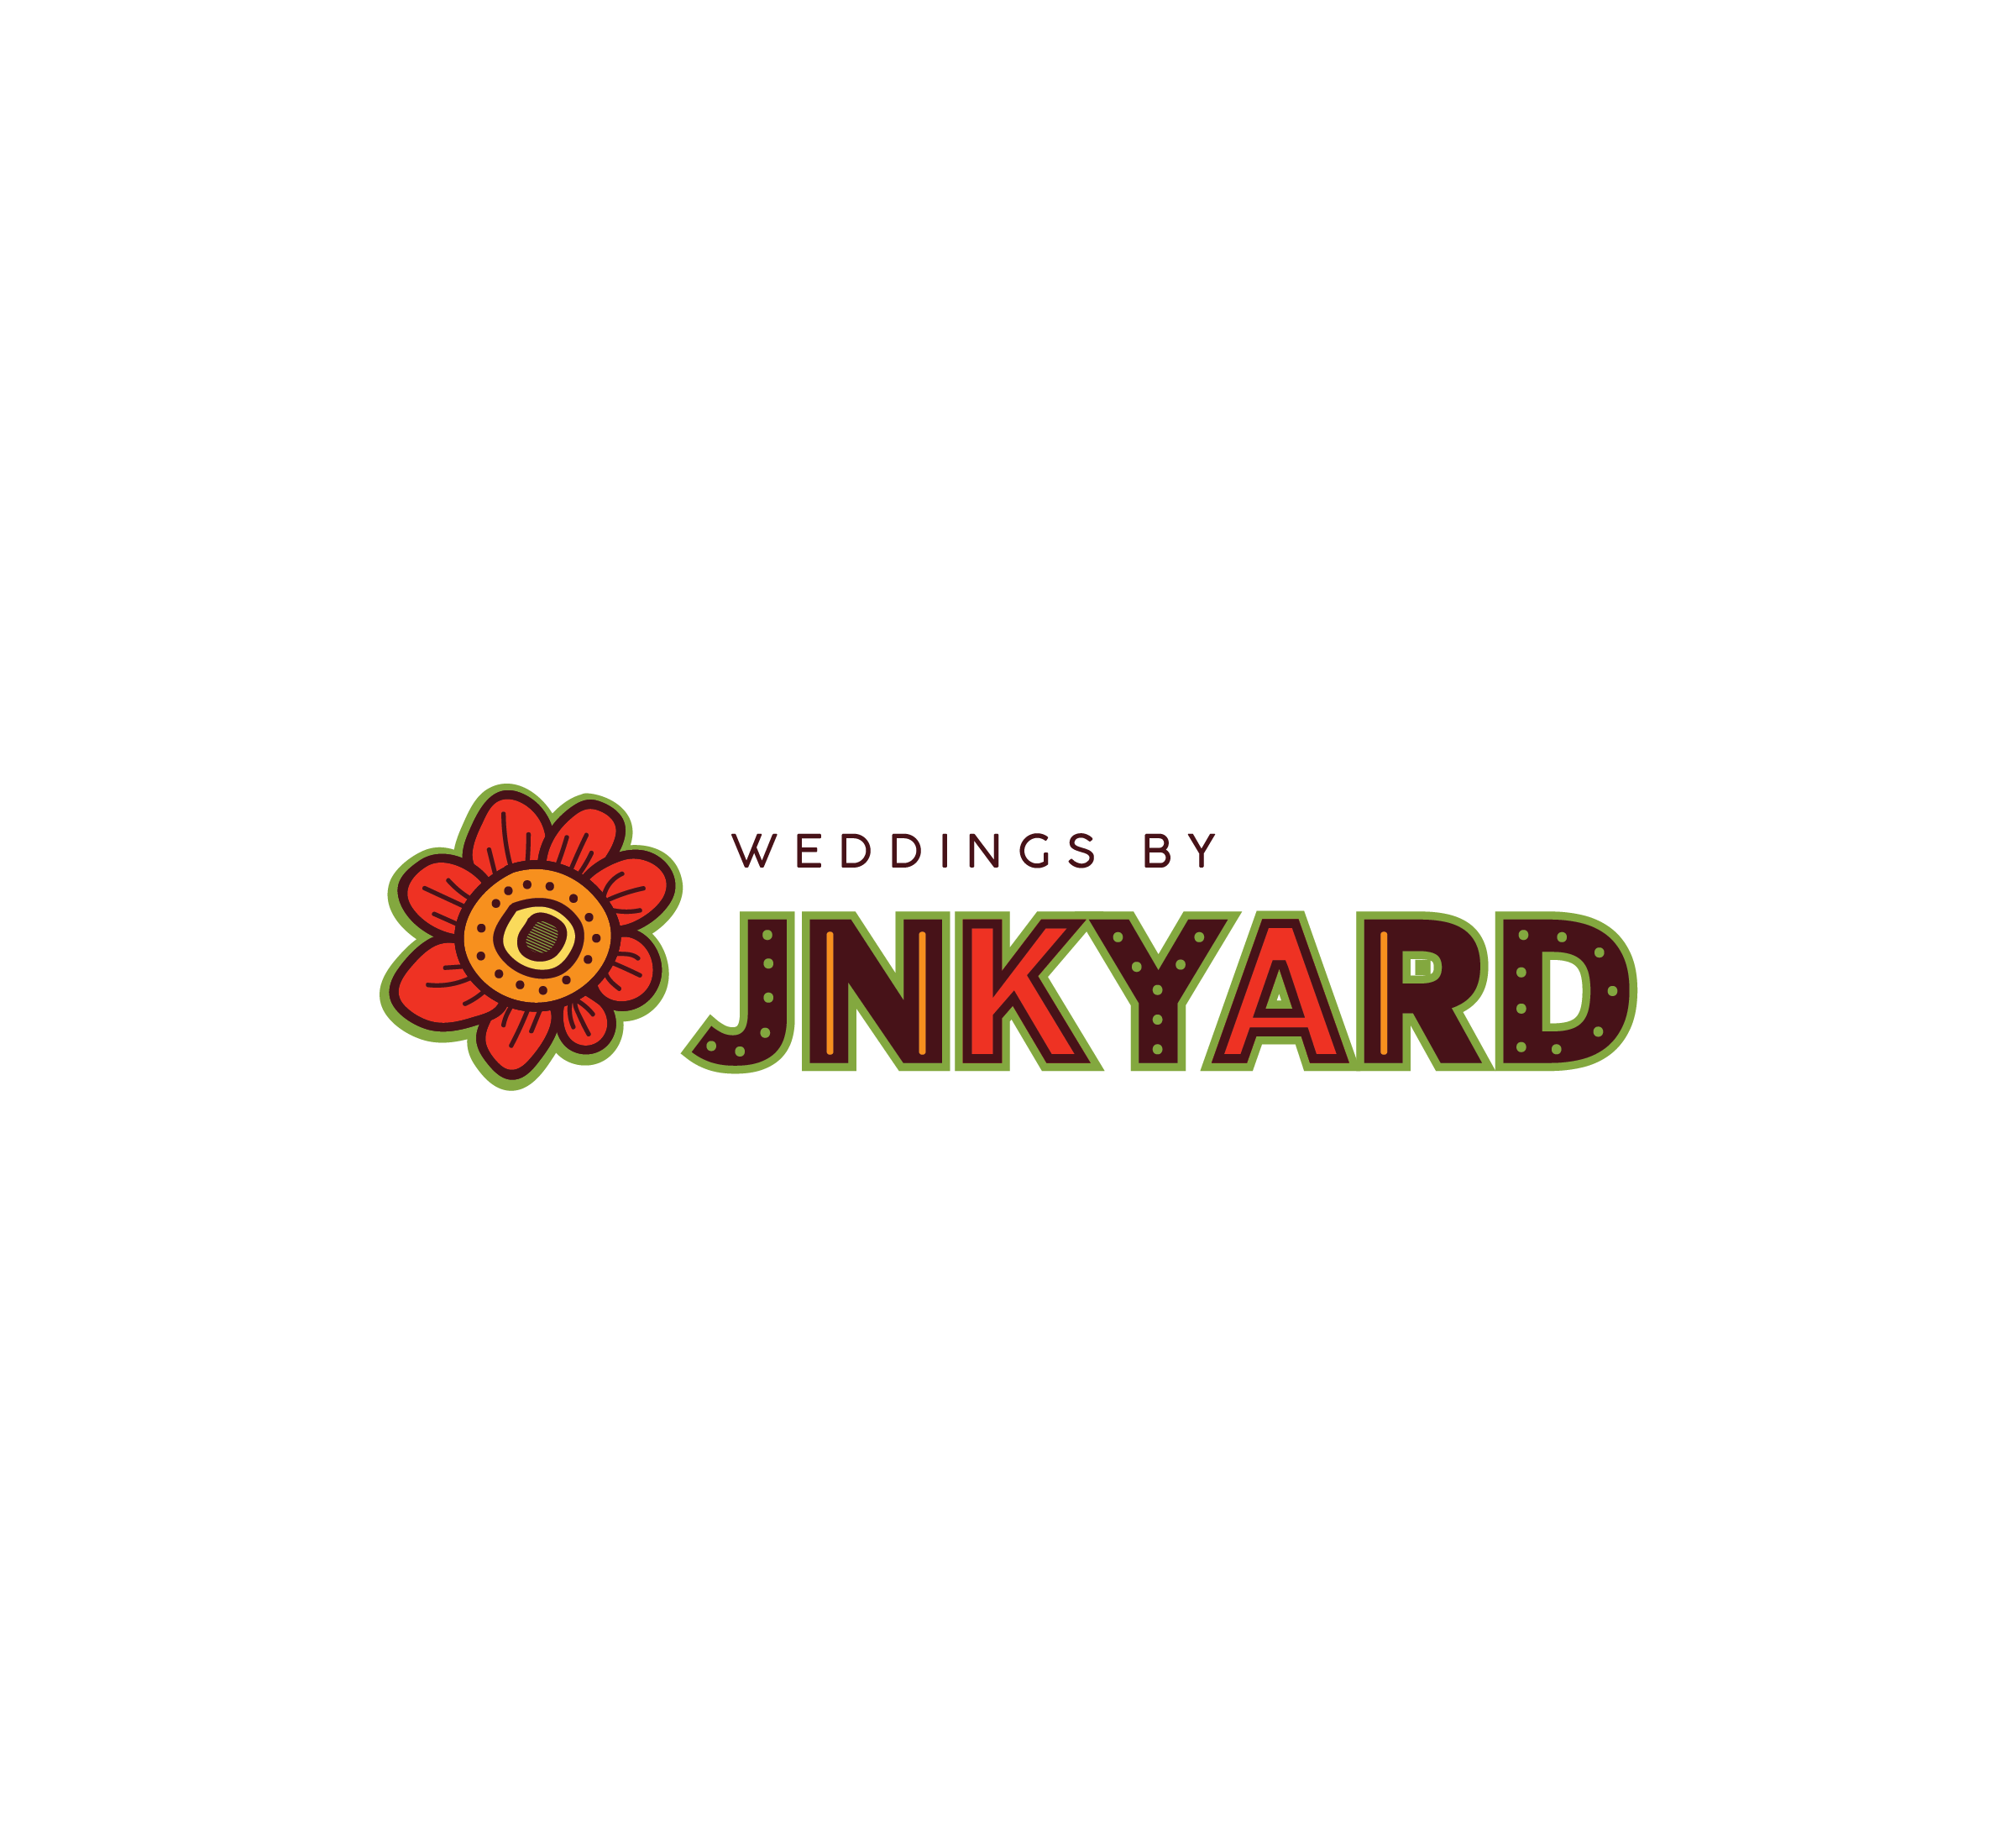 Weddings by Jnkyard Logo